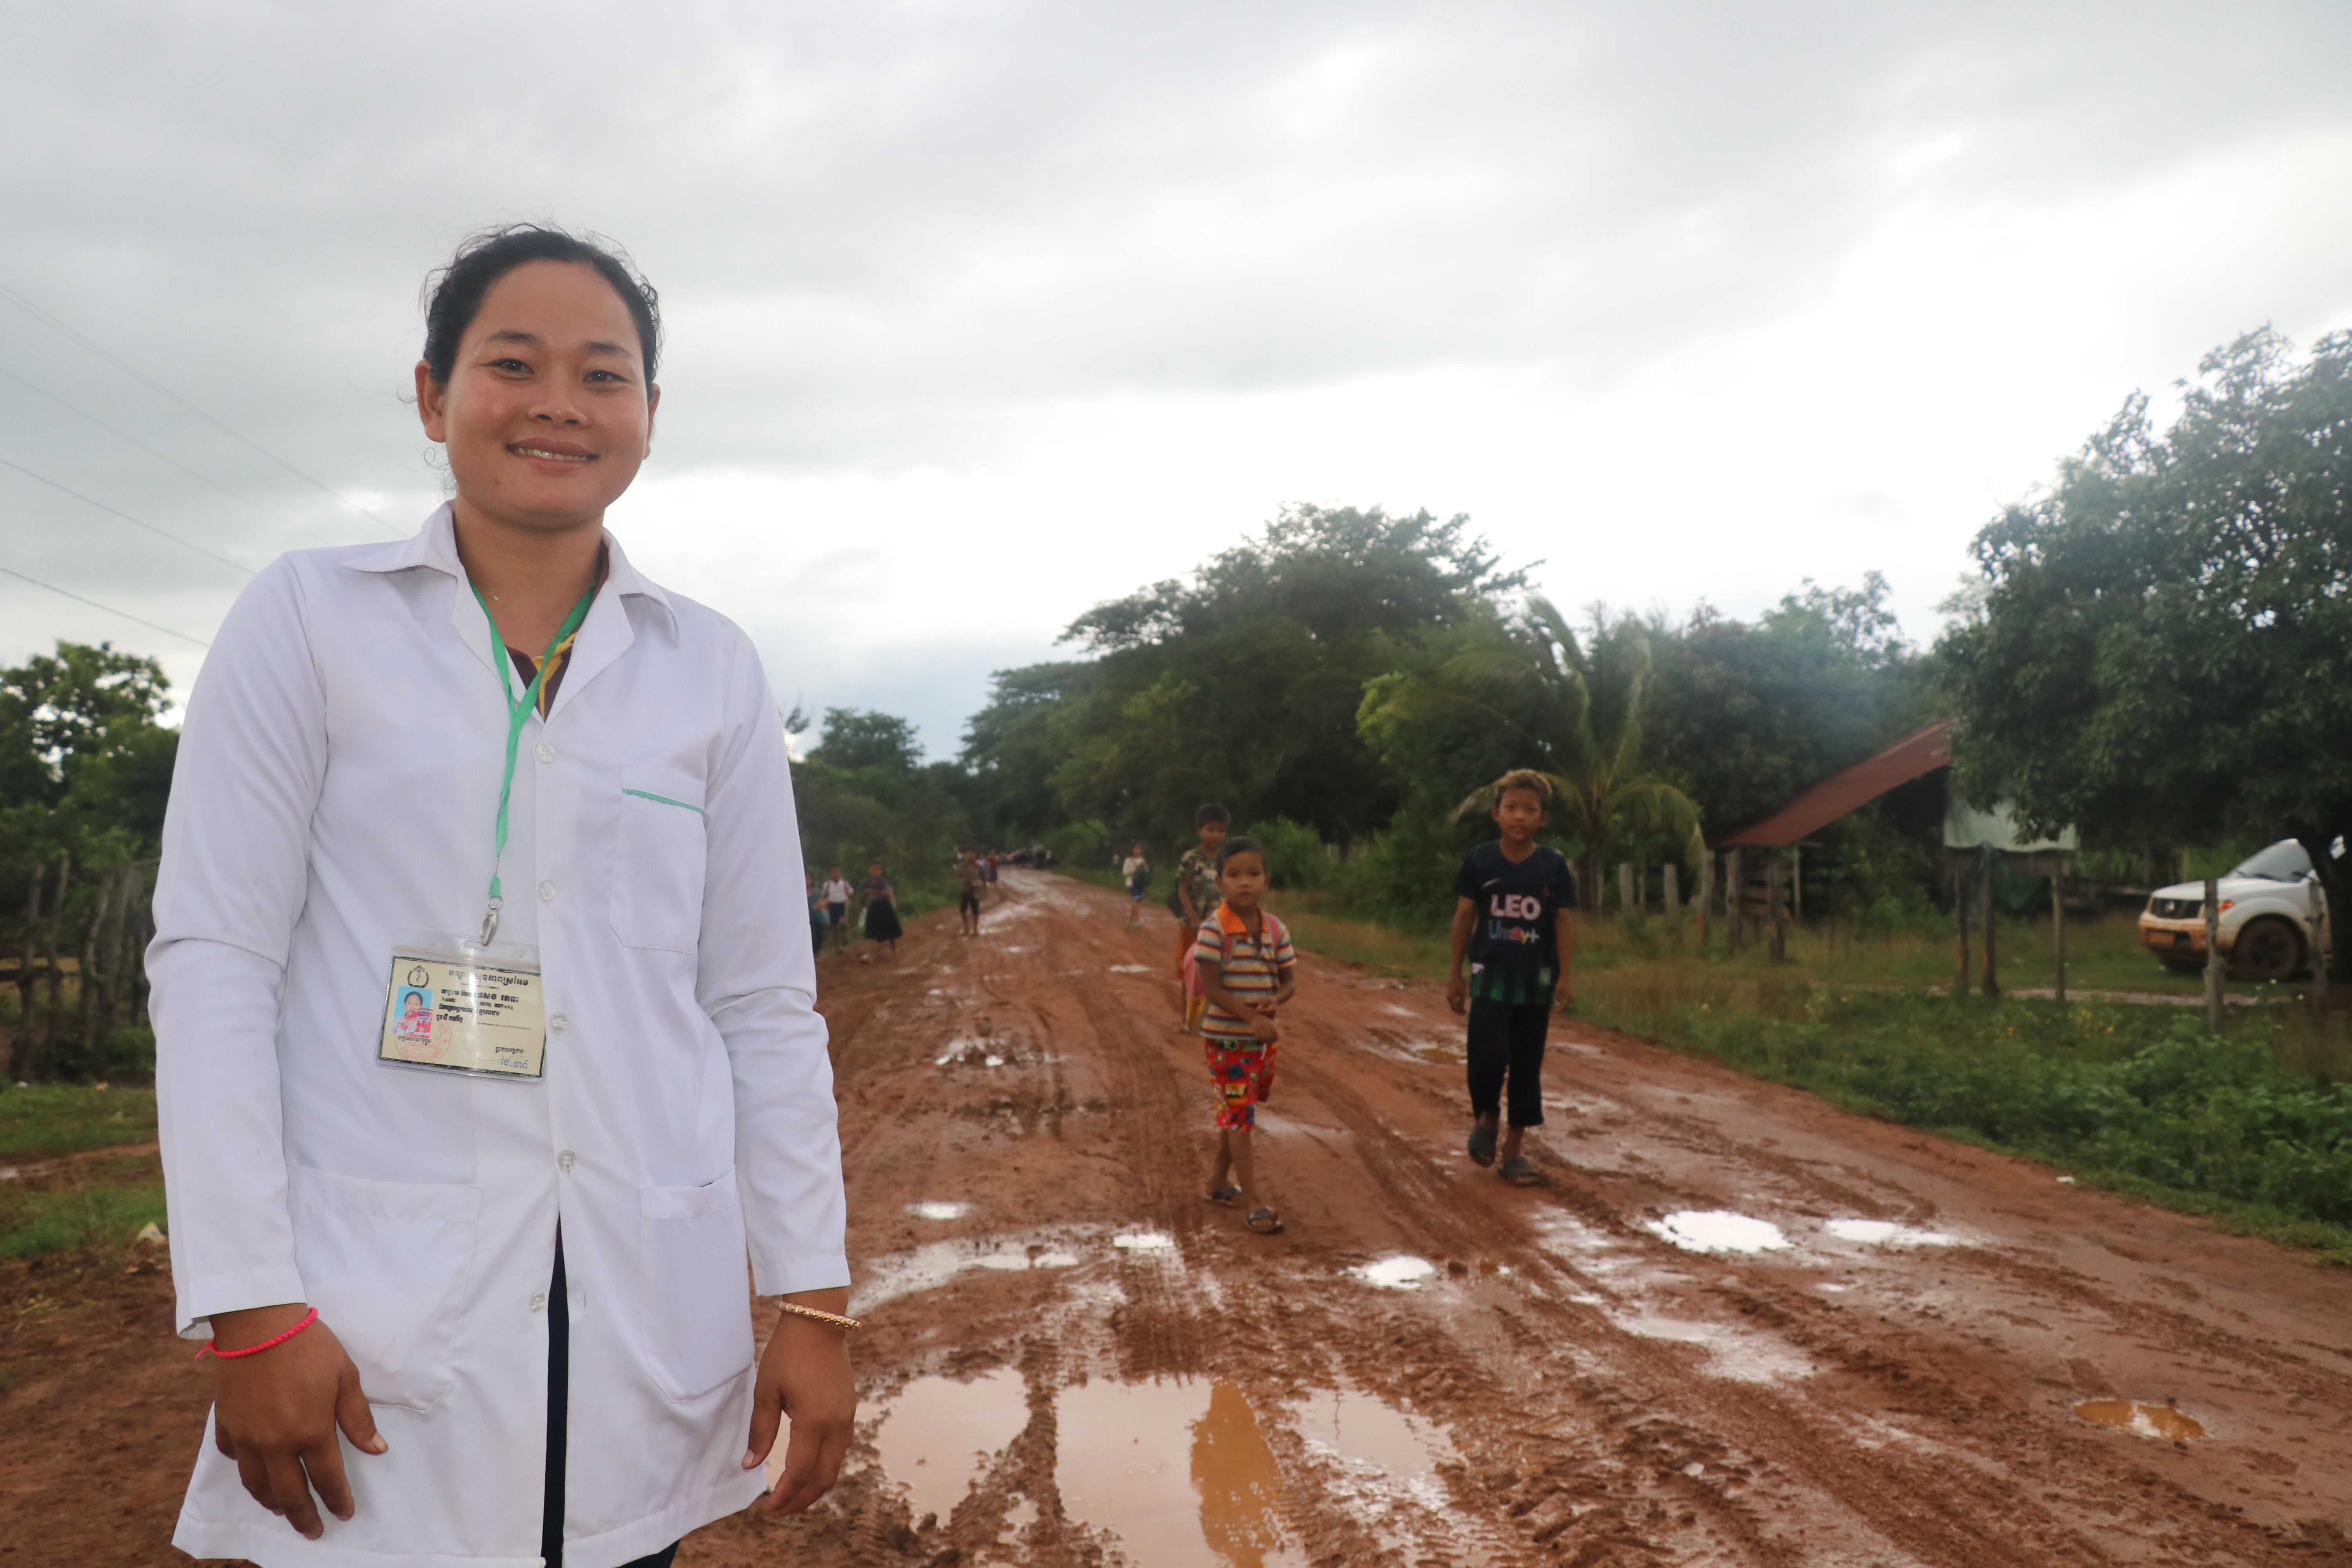 Ratana stands in a dirt-road from the health post to village